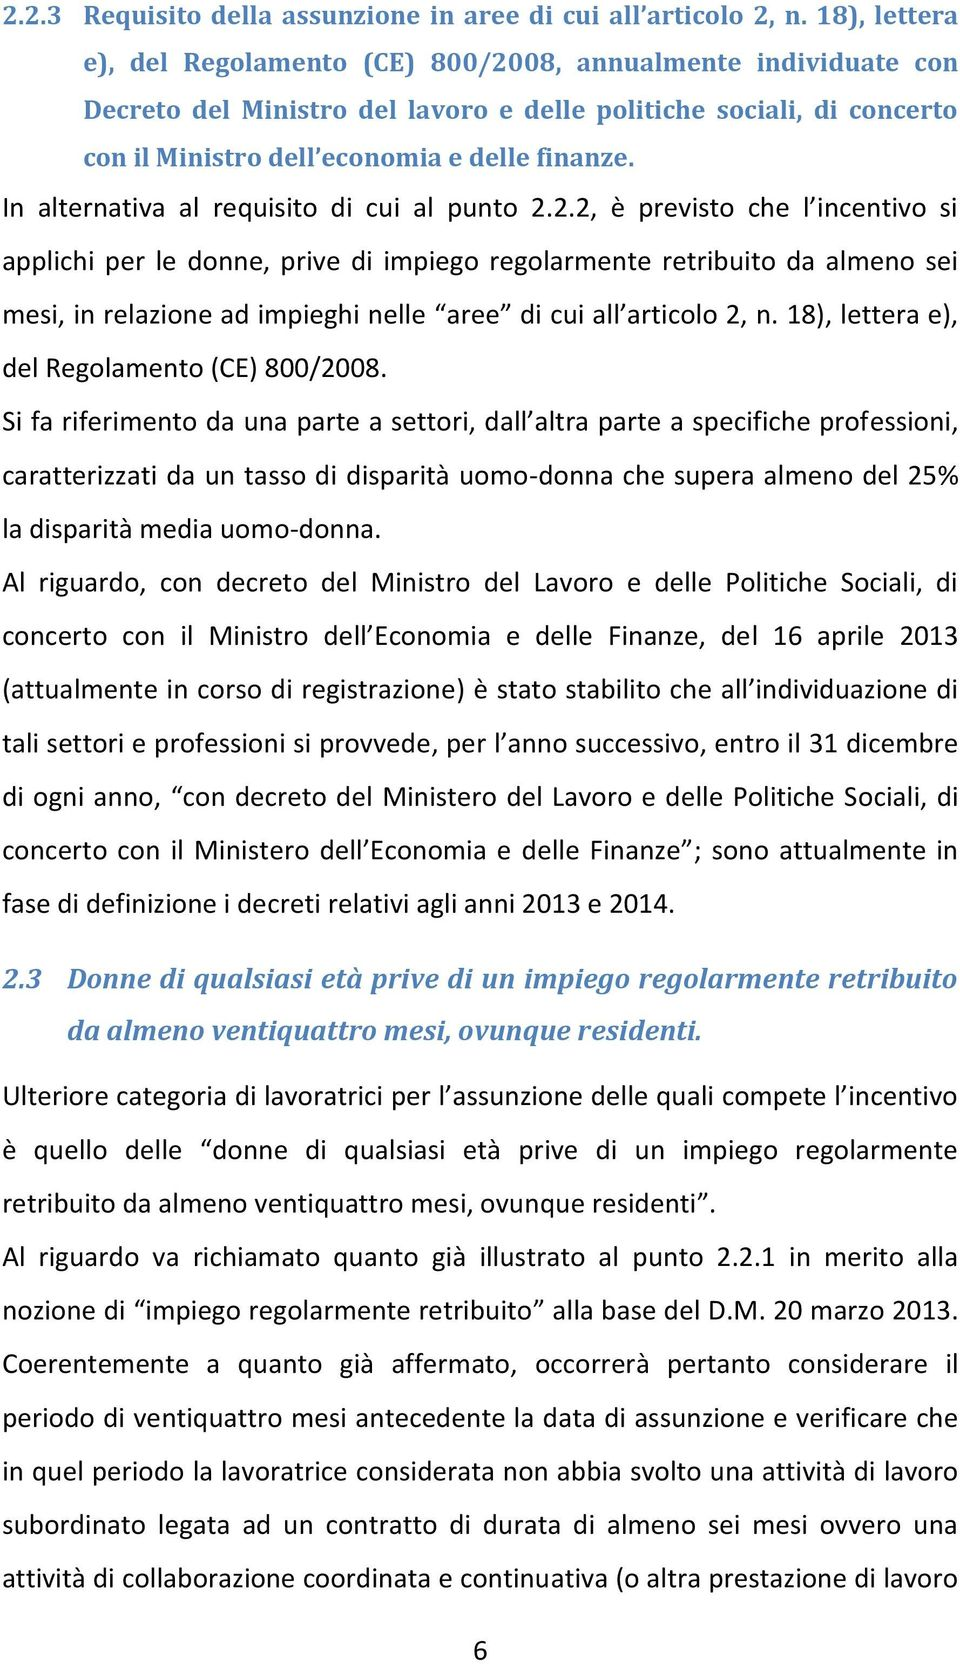 In alternativa al requisito di cui al punto 2.